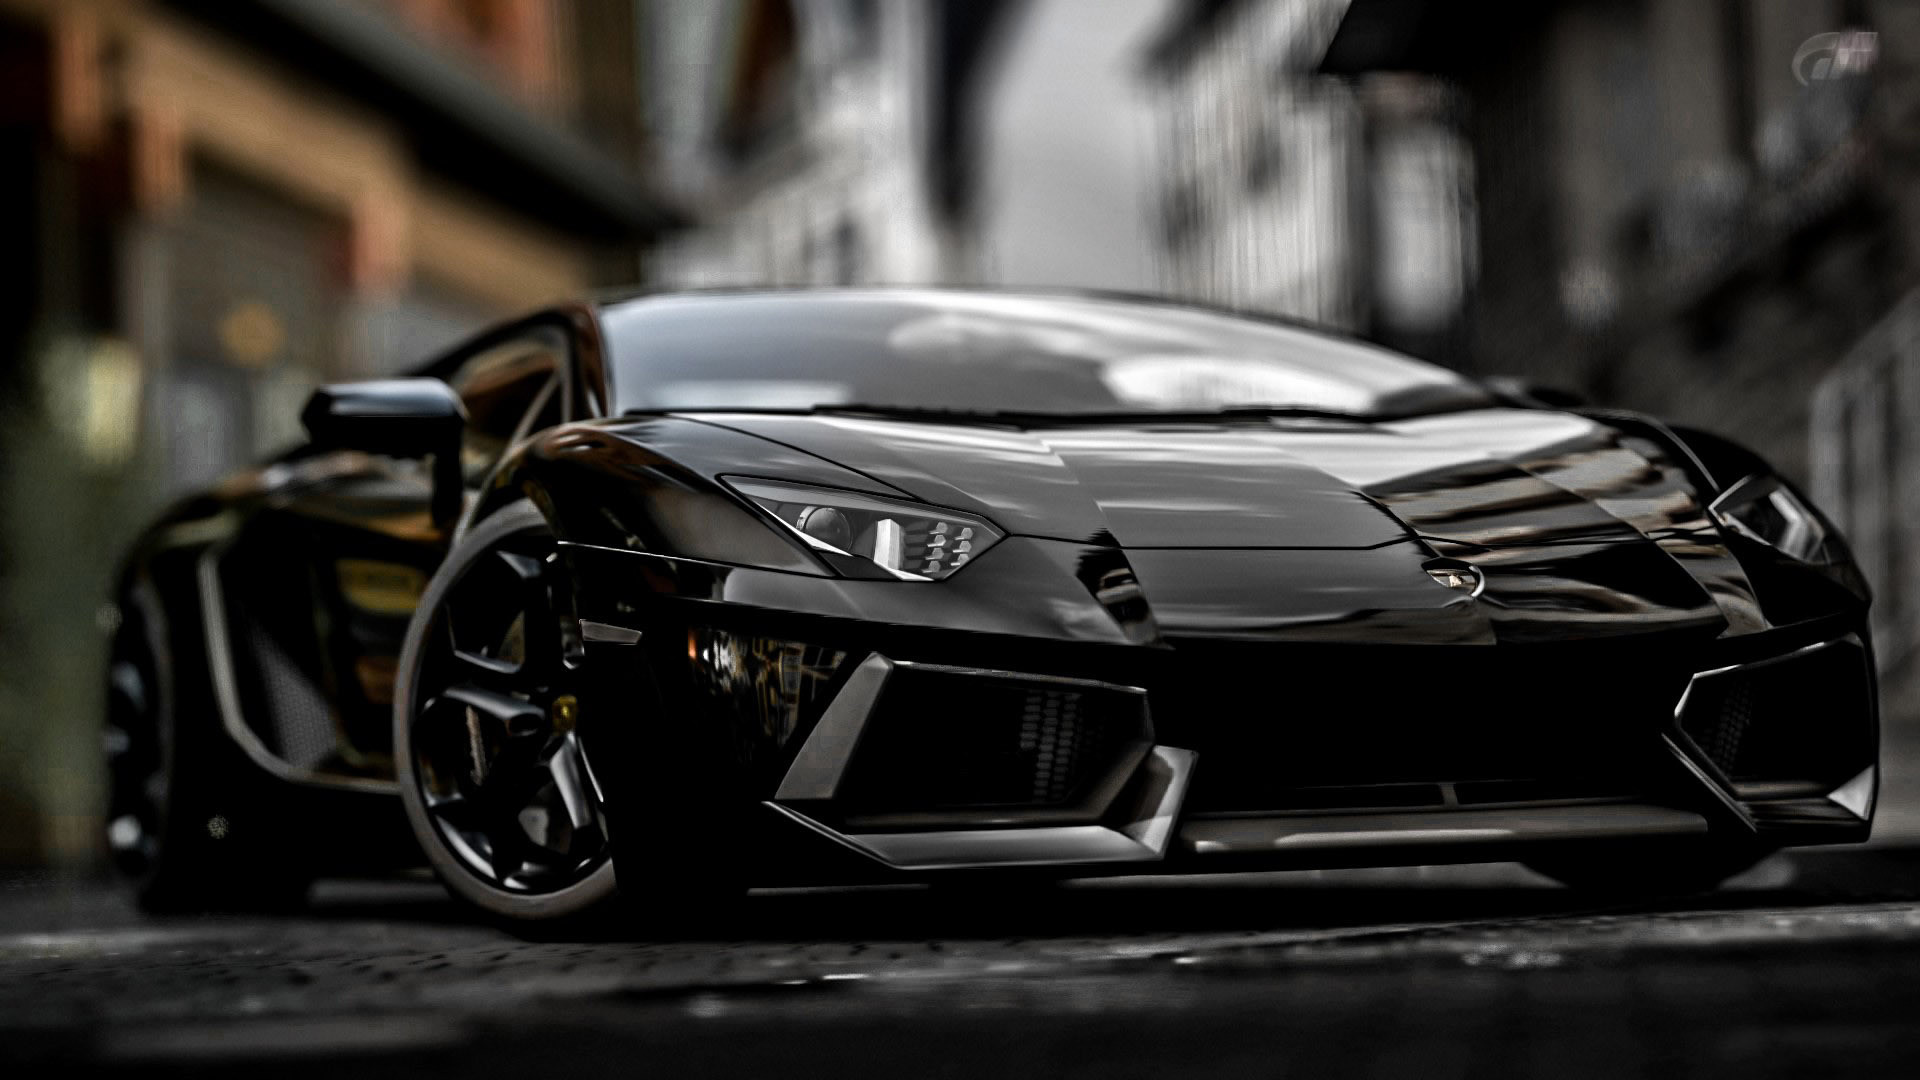 Black And Red Car Wallpaper 75 Images